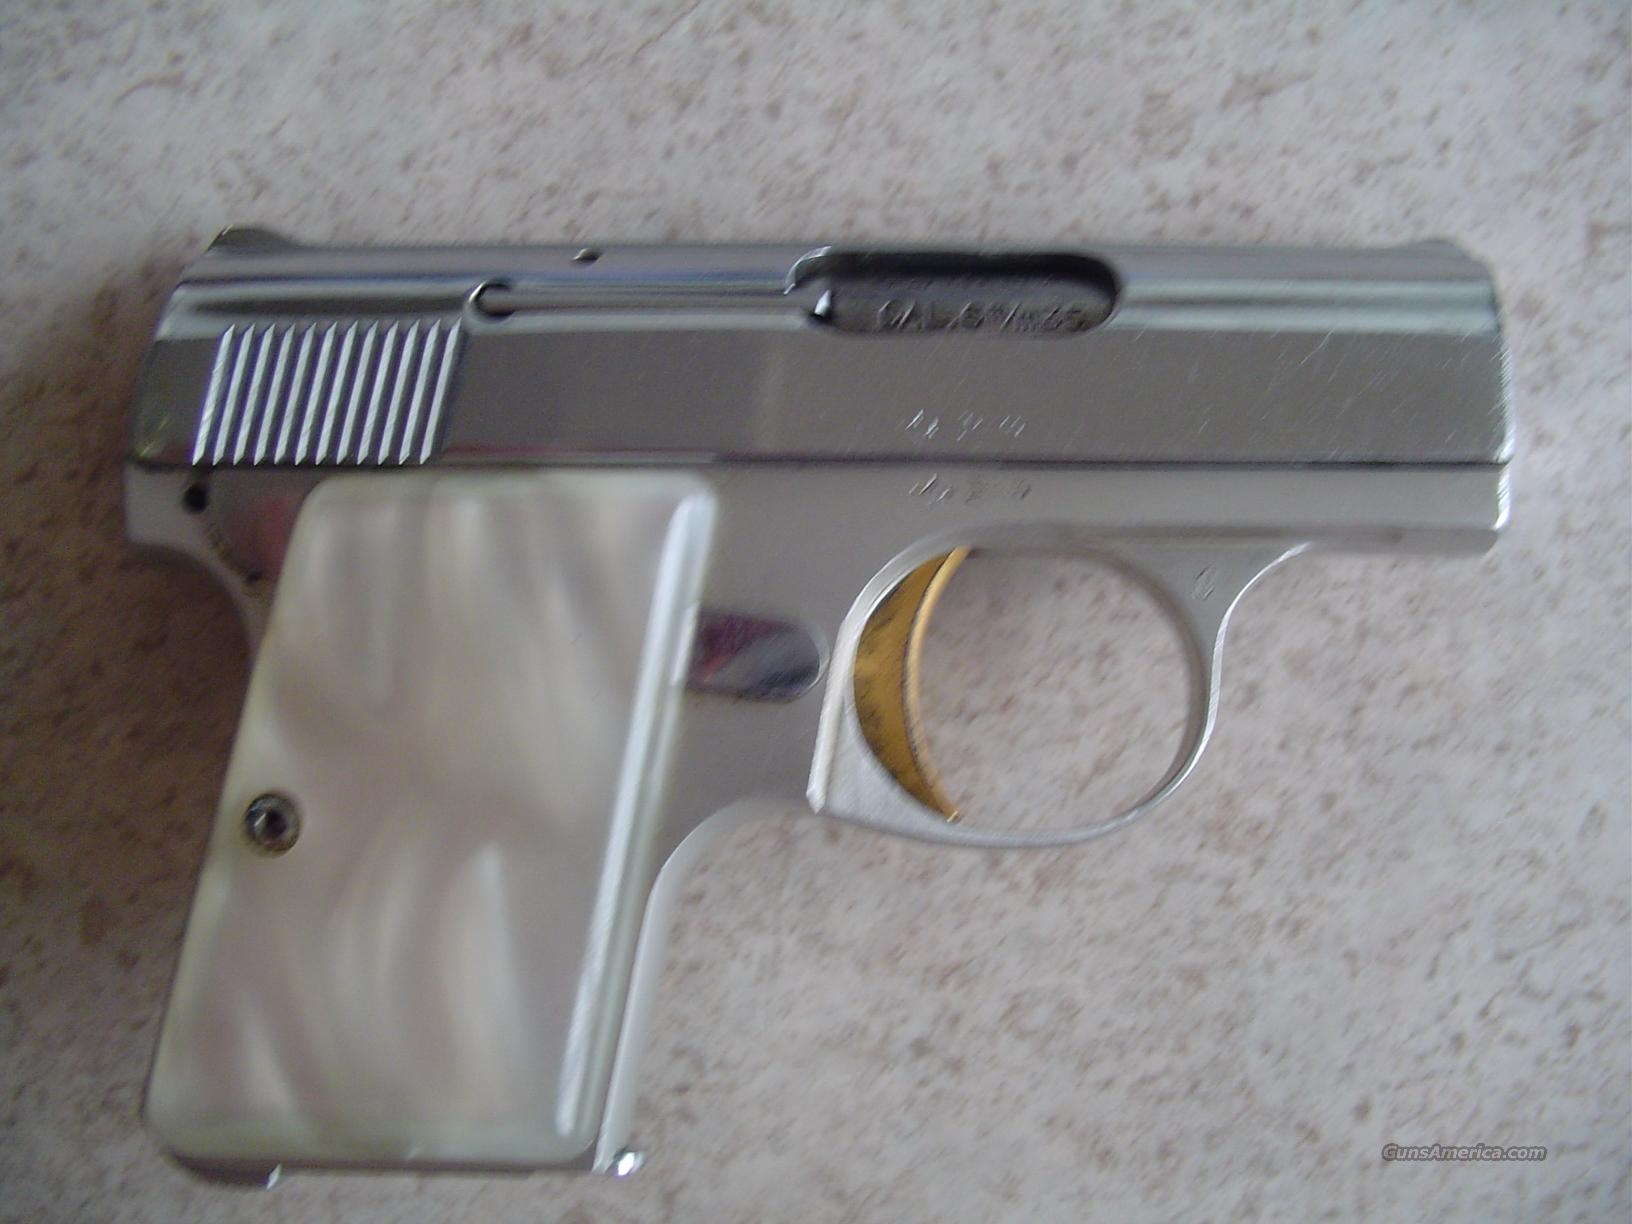 VERY NICE NICKEL BABY BROWNING MADE IN BELGIUM!! PEARL GRIPS!  Guns > Pistols > Browning Pistols > Baby Browning